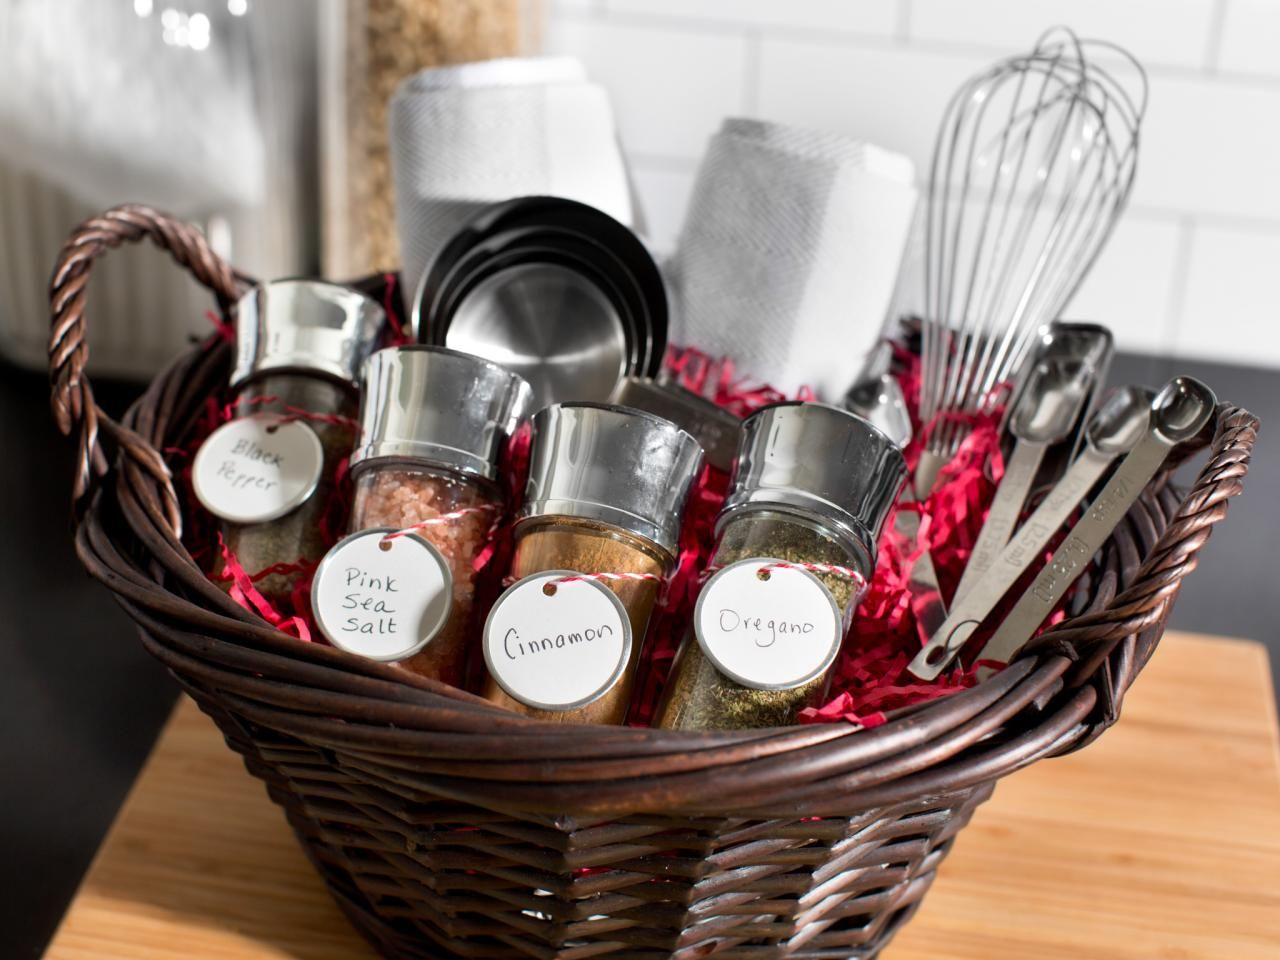 The Chef Christmas Gift Baskets Easy Crafts And Homemade